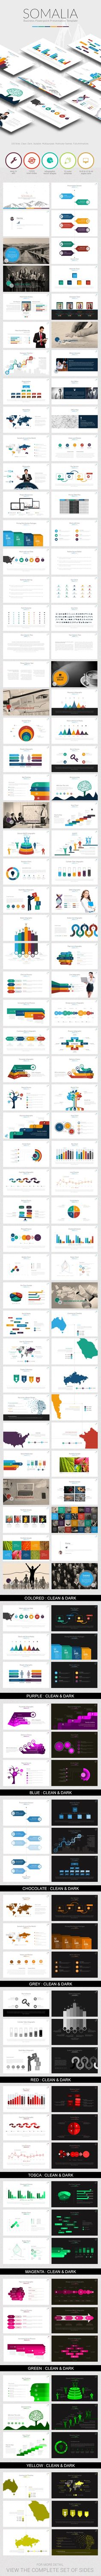 Somalia Powerpoint Presentation Template #design #slides Download: http://graphicriver.net/item/somalia-powerpointtemplate/13468869?ref=ksioks